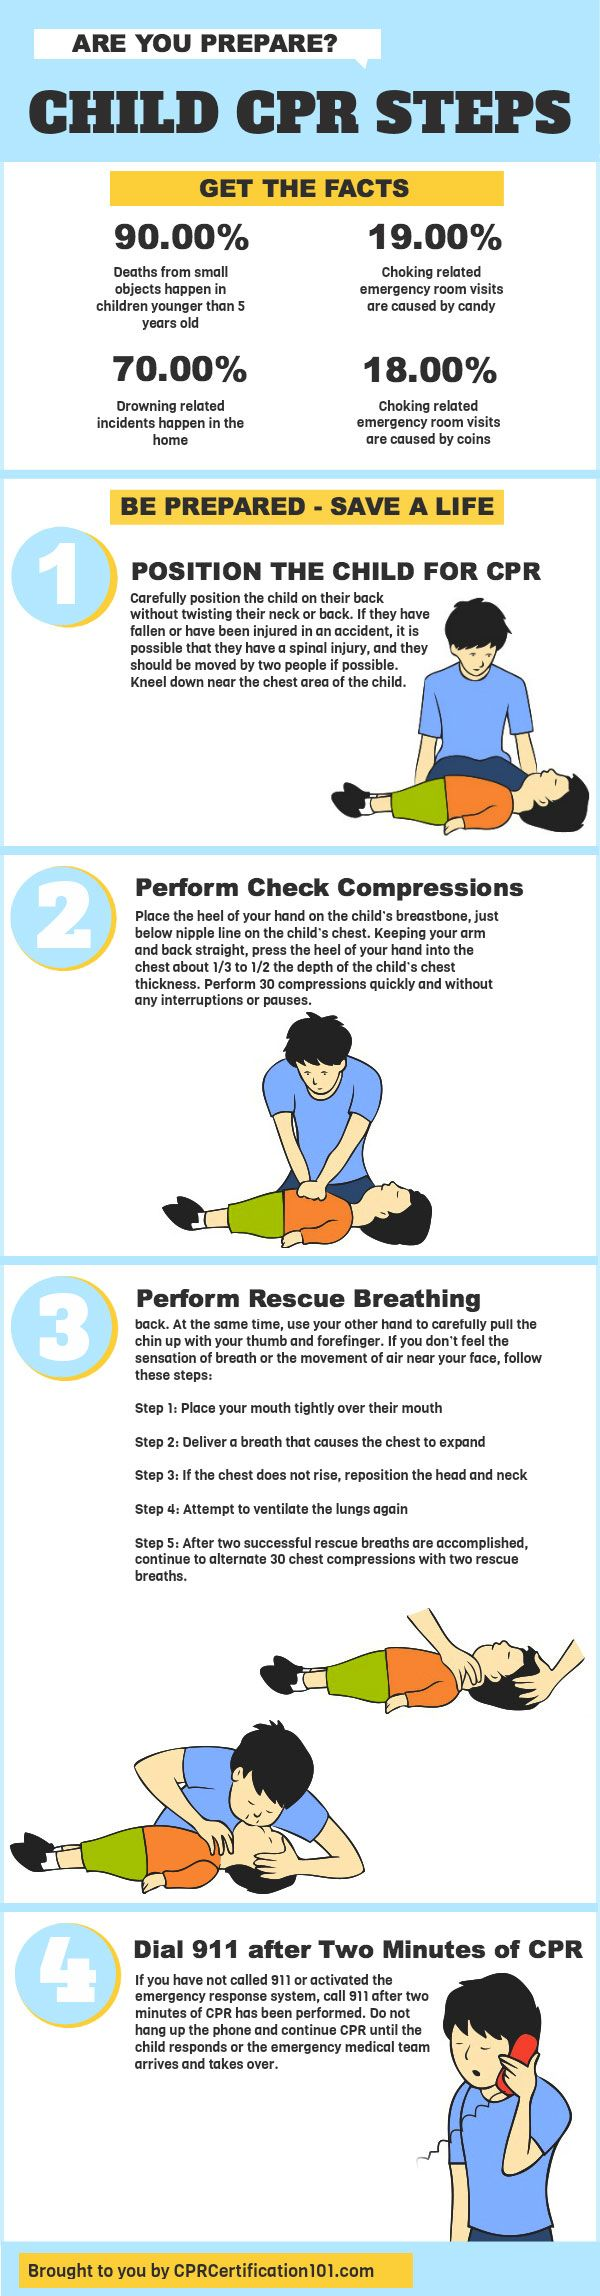 best images about medical medical prescription child cpr steps about halfway down the page link contains many other graphics